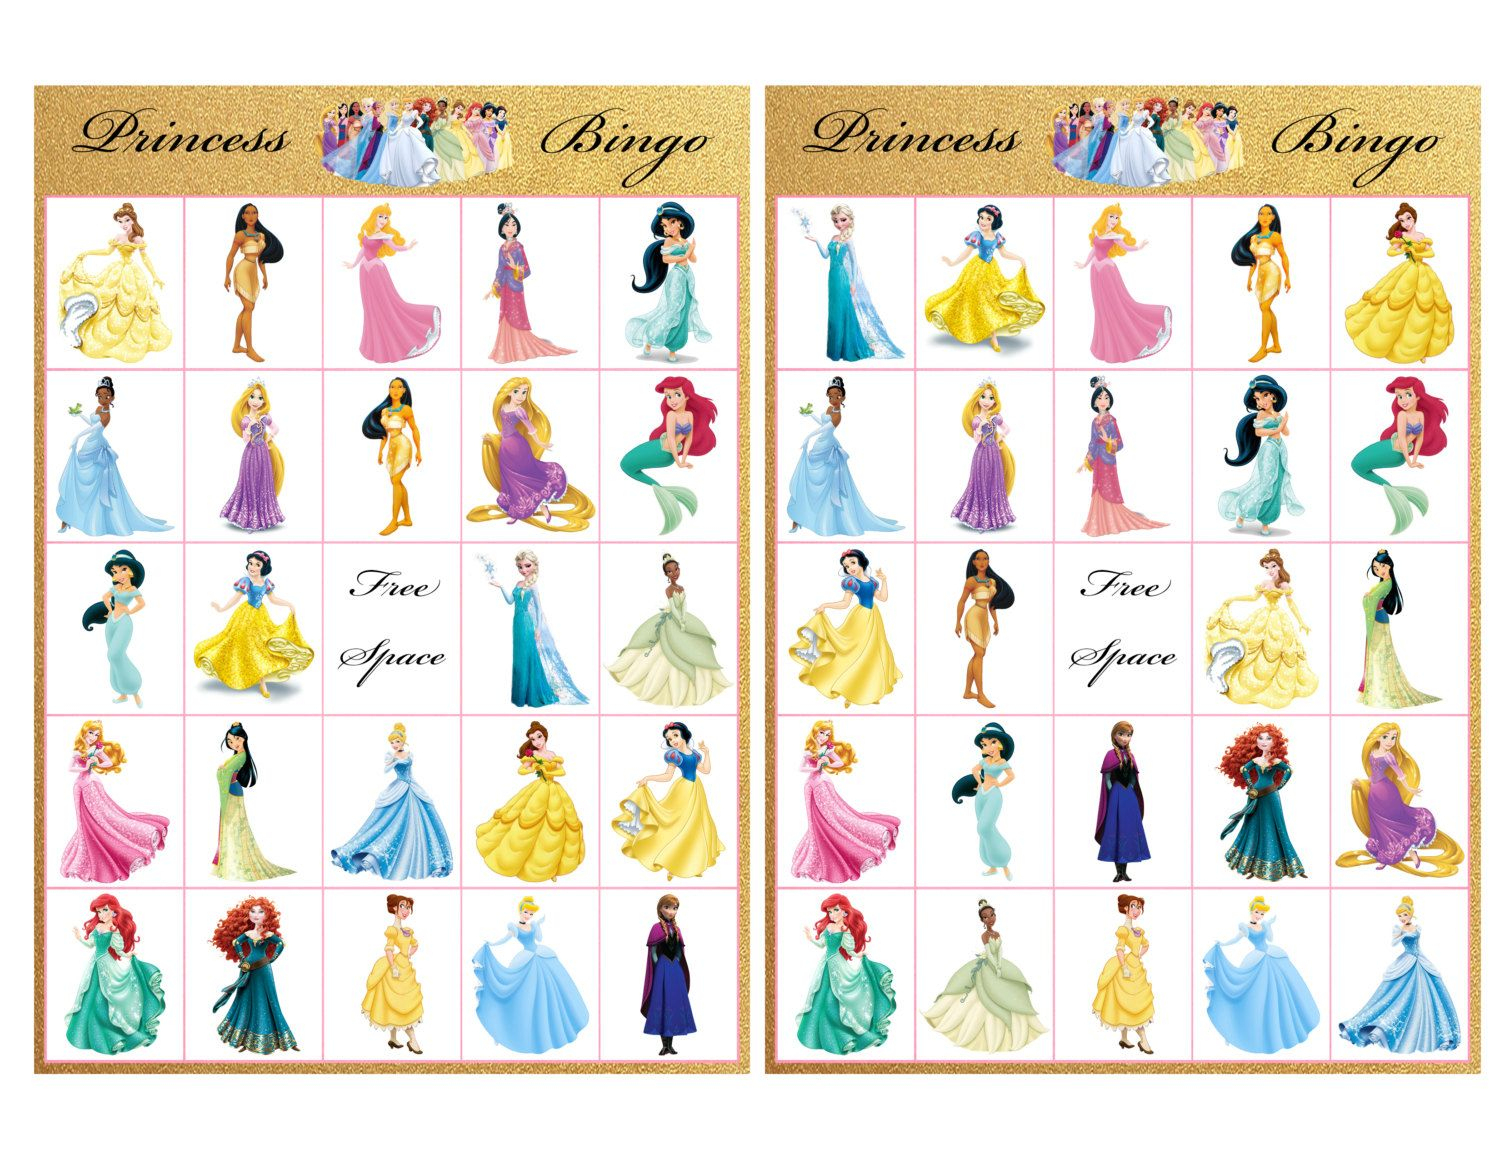 Princess Bingobackstitchmix On Etsy | Princess Bingo